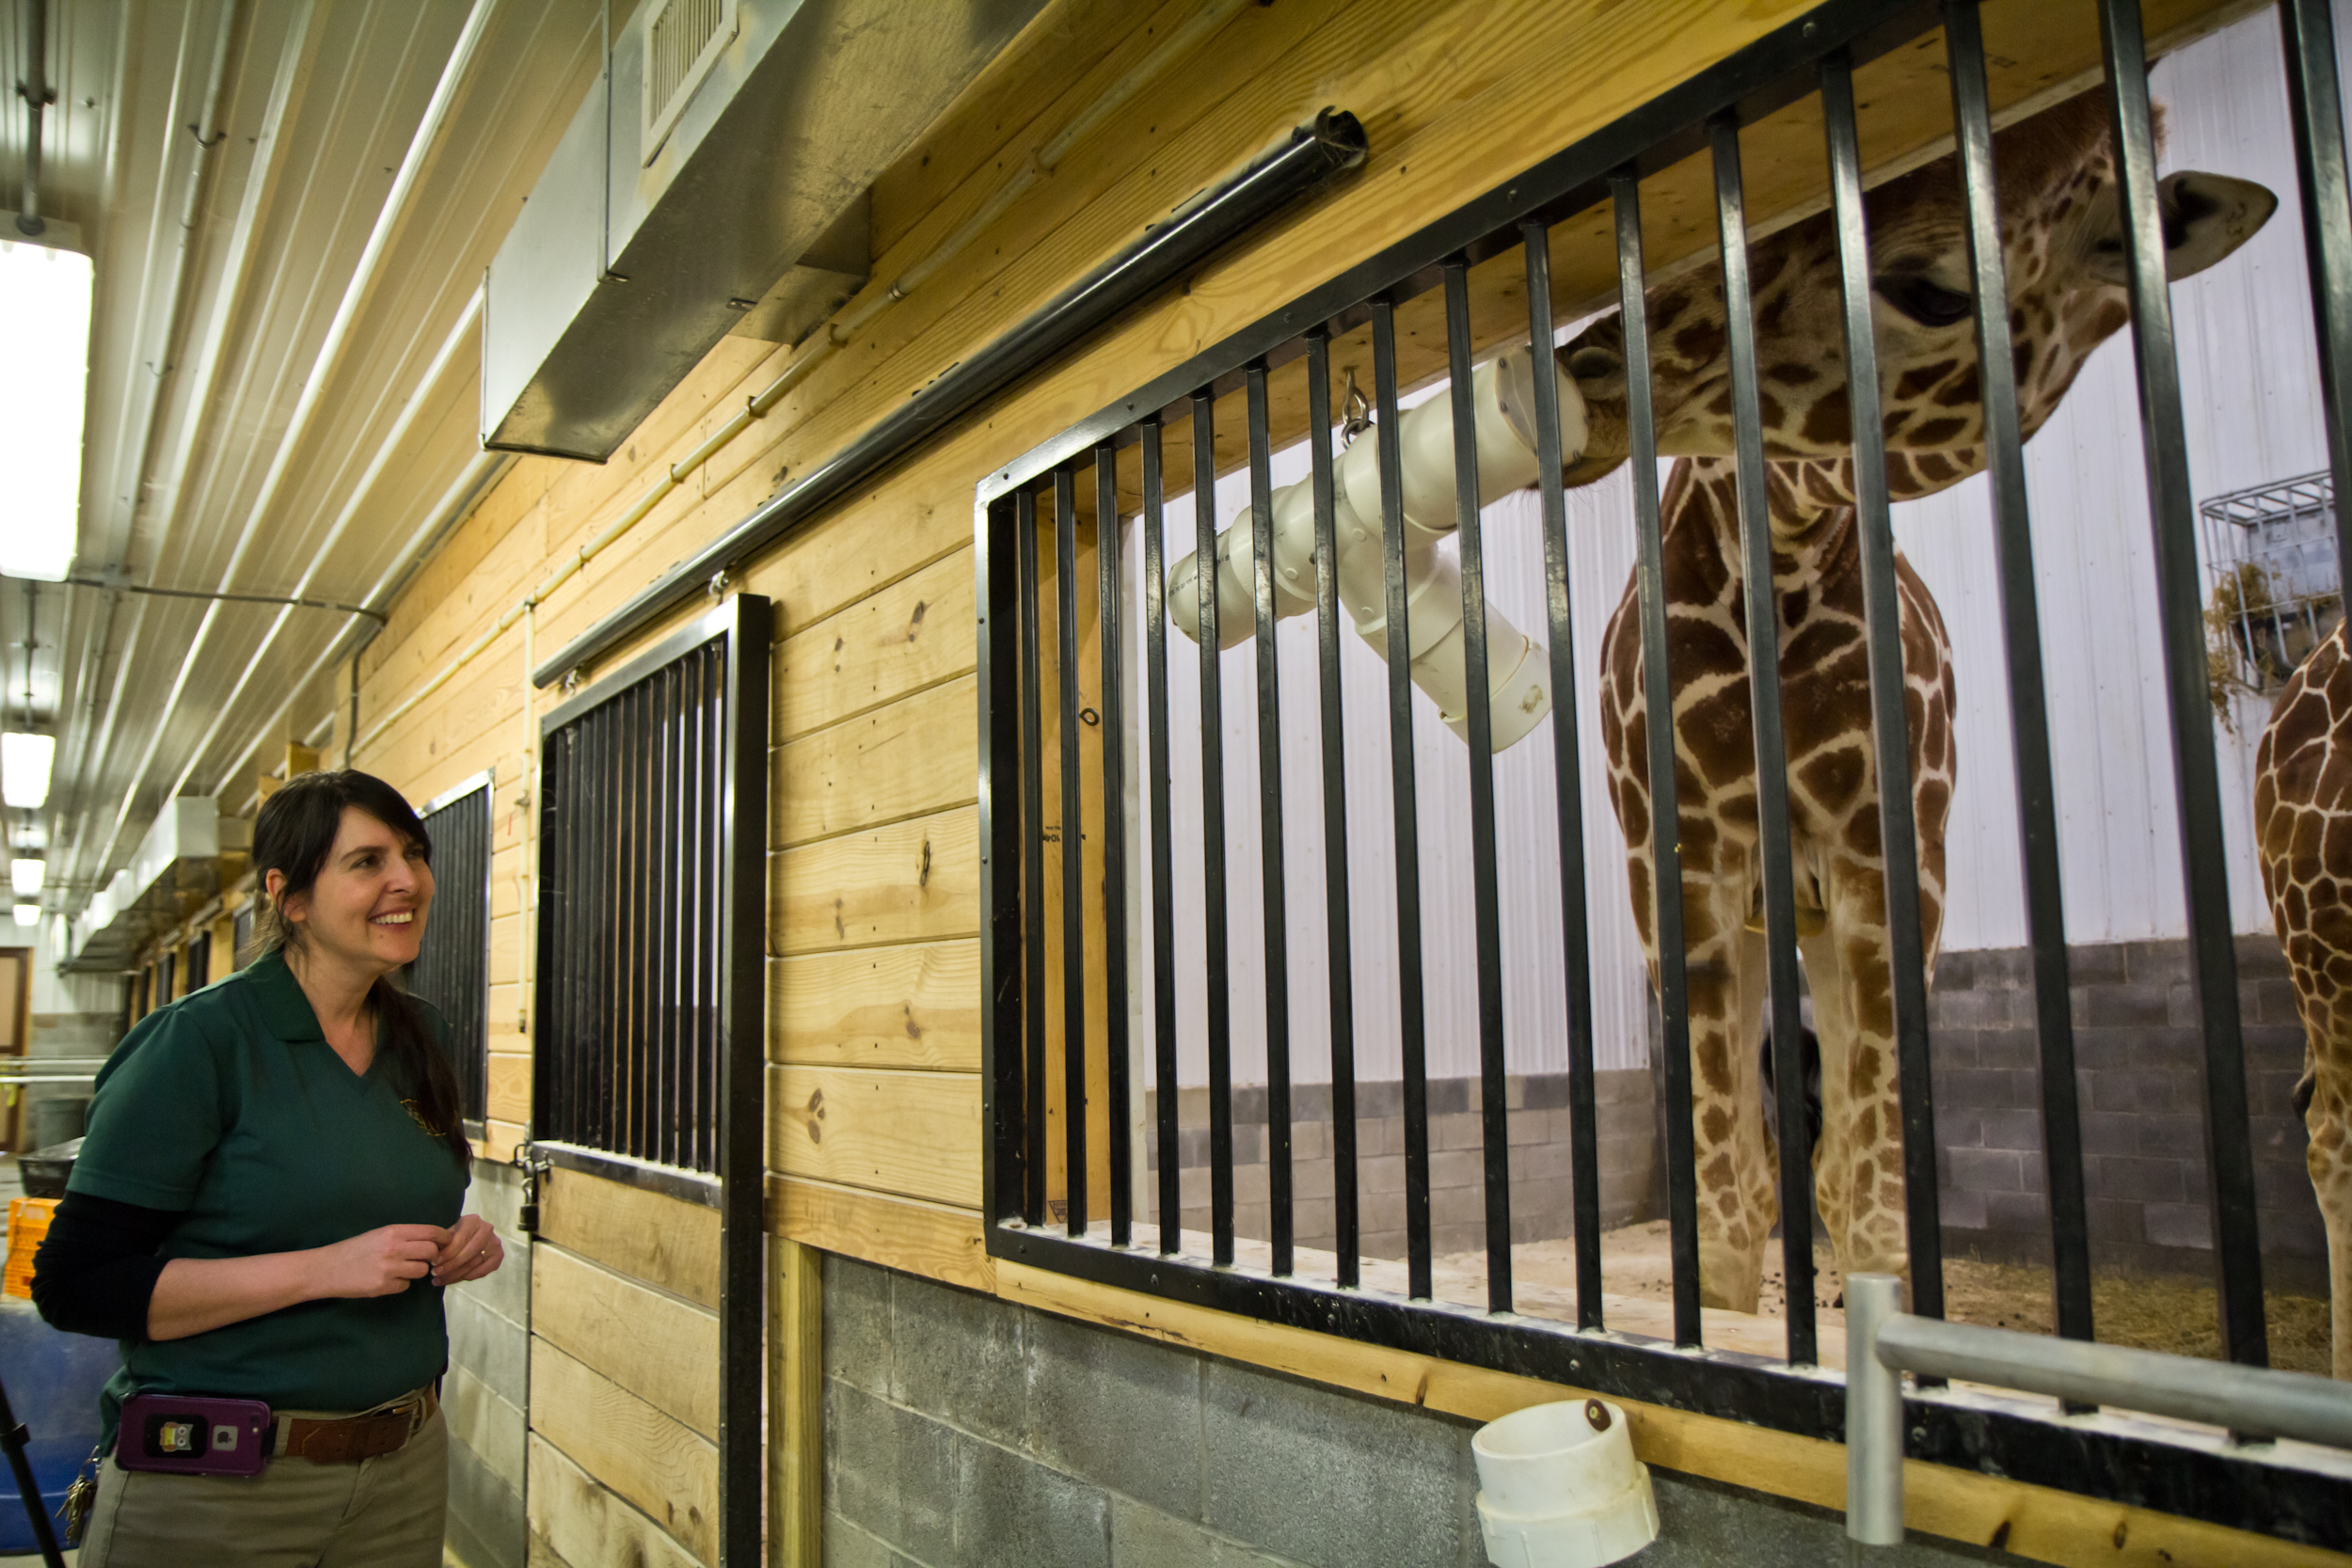 Marina Haynes, General Curator at the Elmwood Park Zoo in Norristown, says that zoo keepers do a lot more than clean animal cages. (